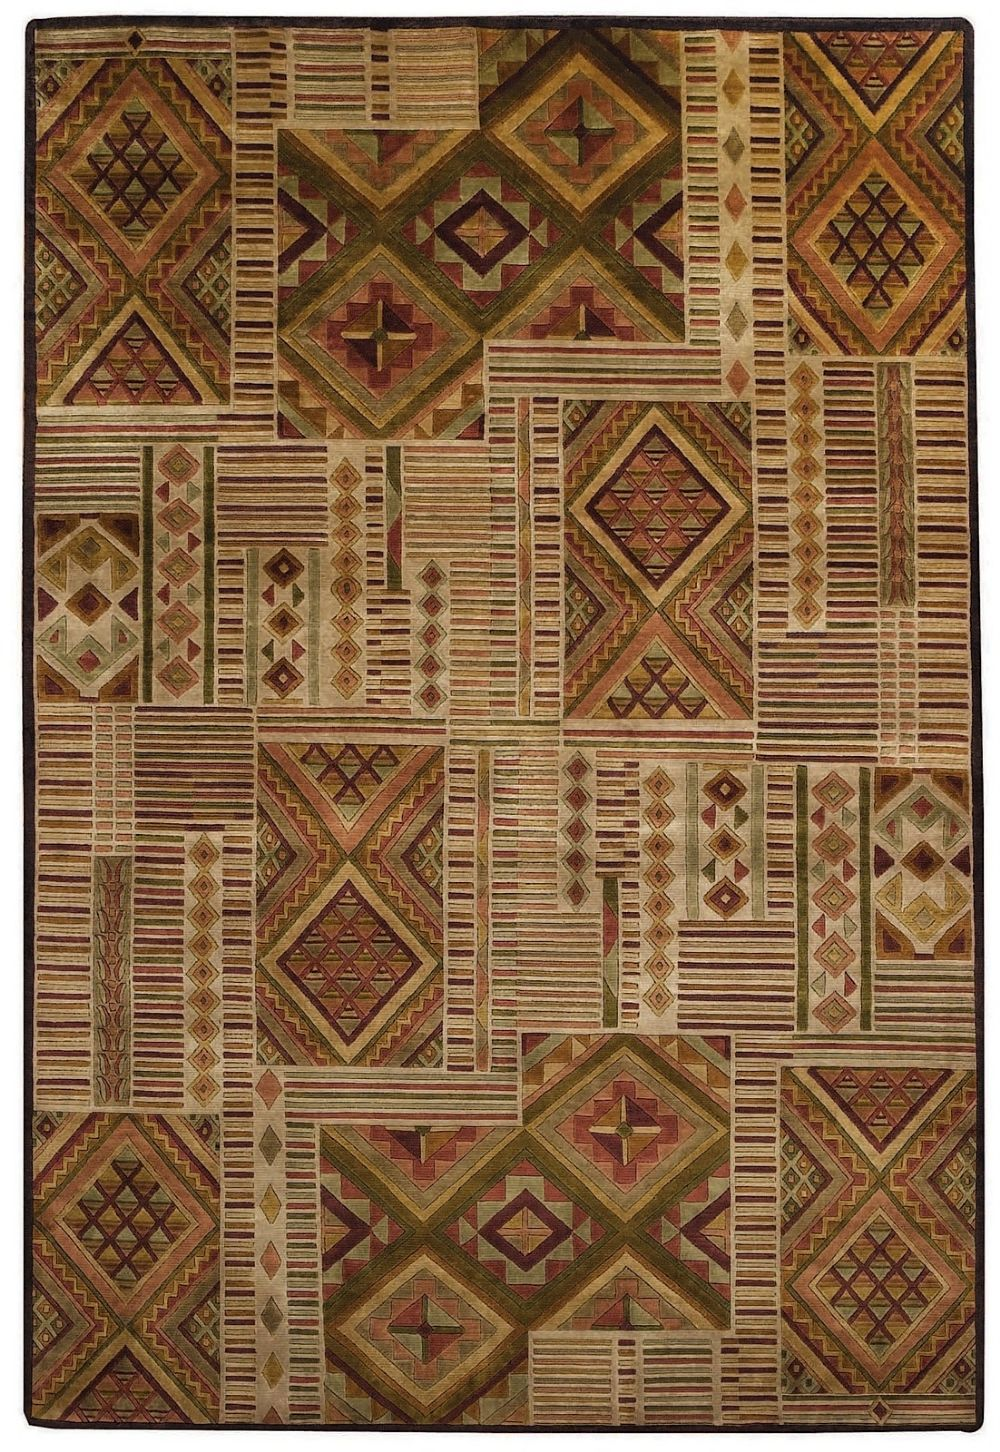 capel crystalle-mosaic contemporary area rug collection